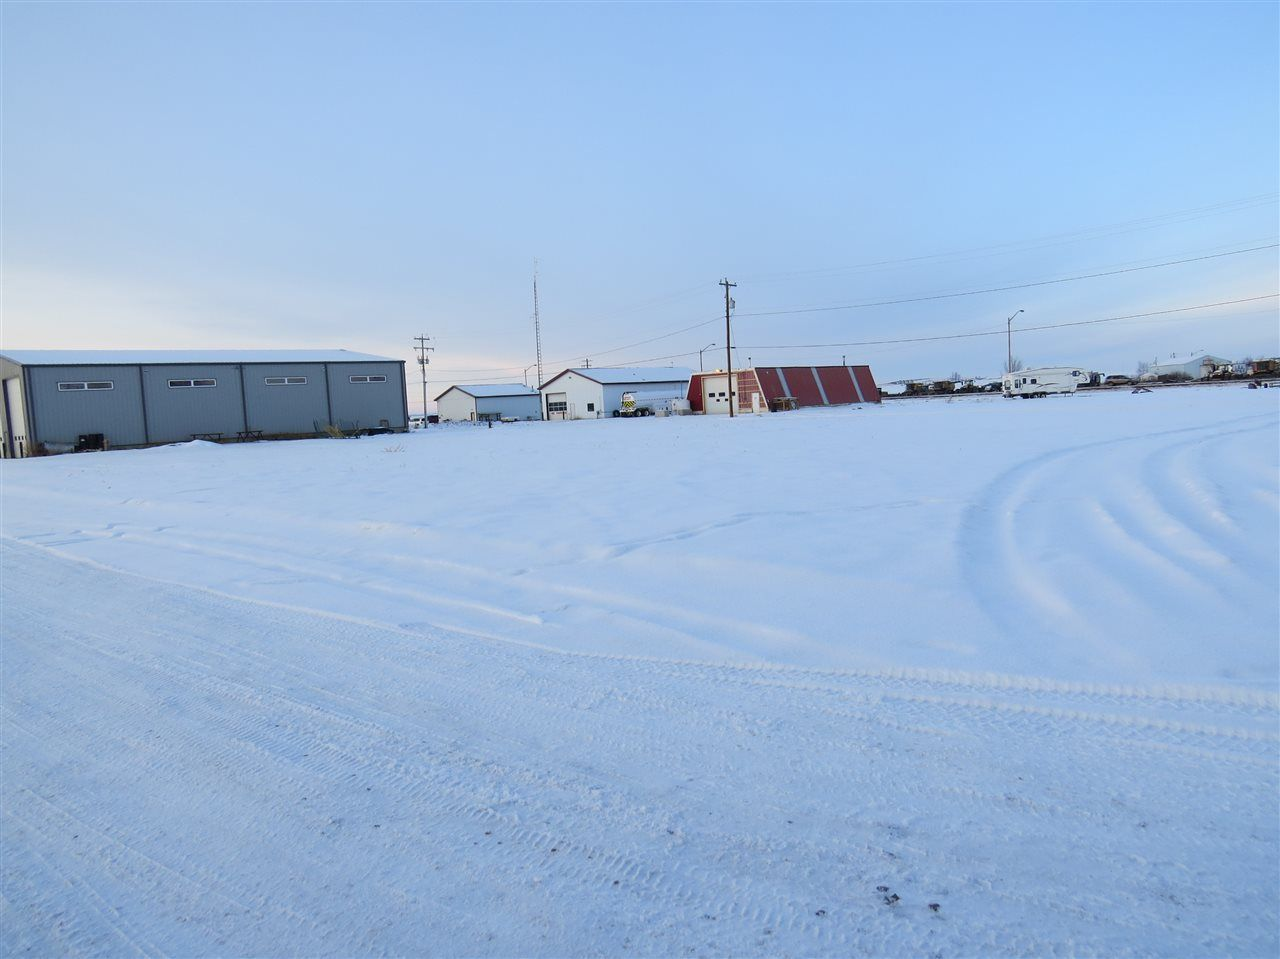 Main Photo: 5010 52 Street: Lougheed Land Commercial for sale : MLS® # E4088236